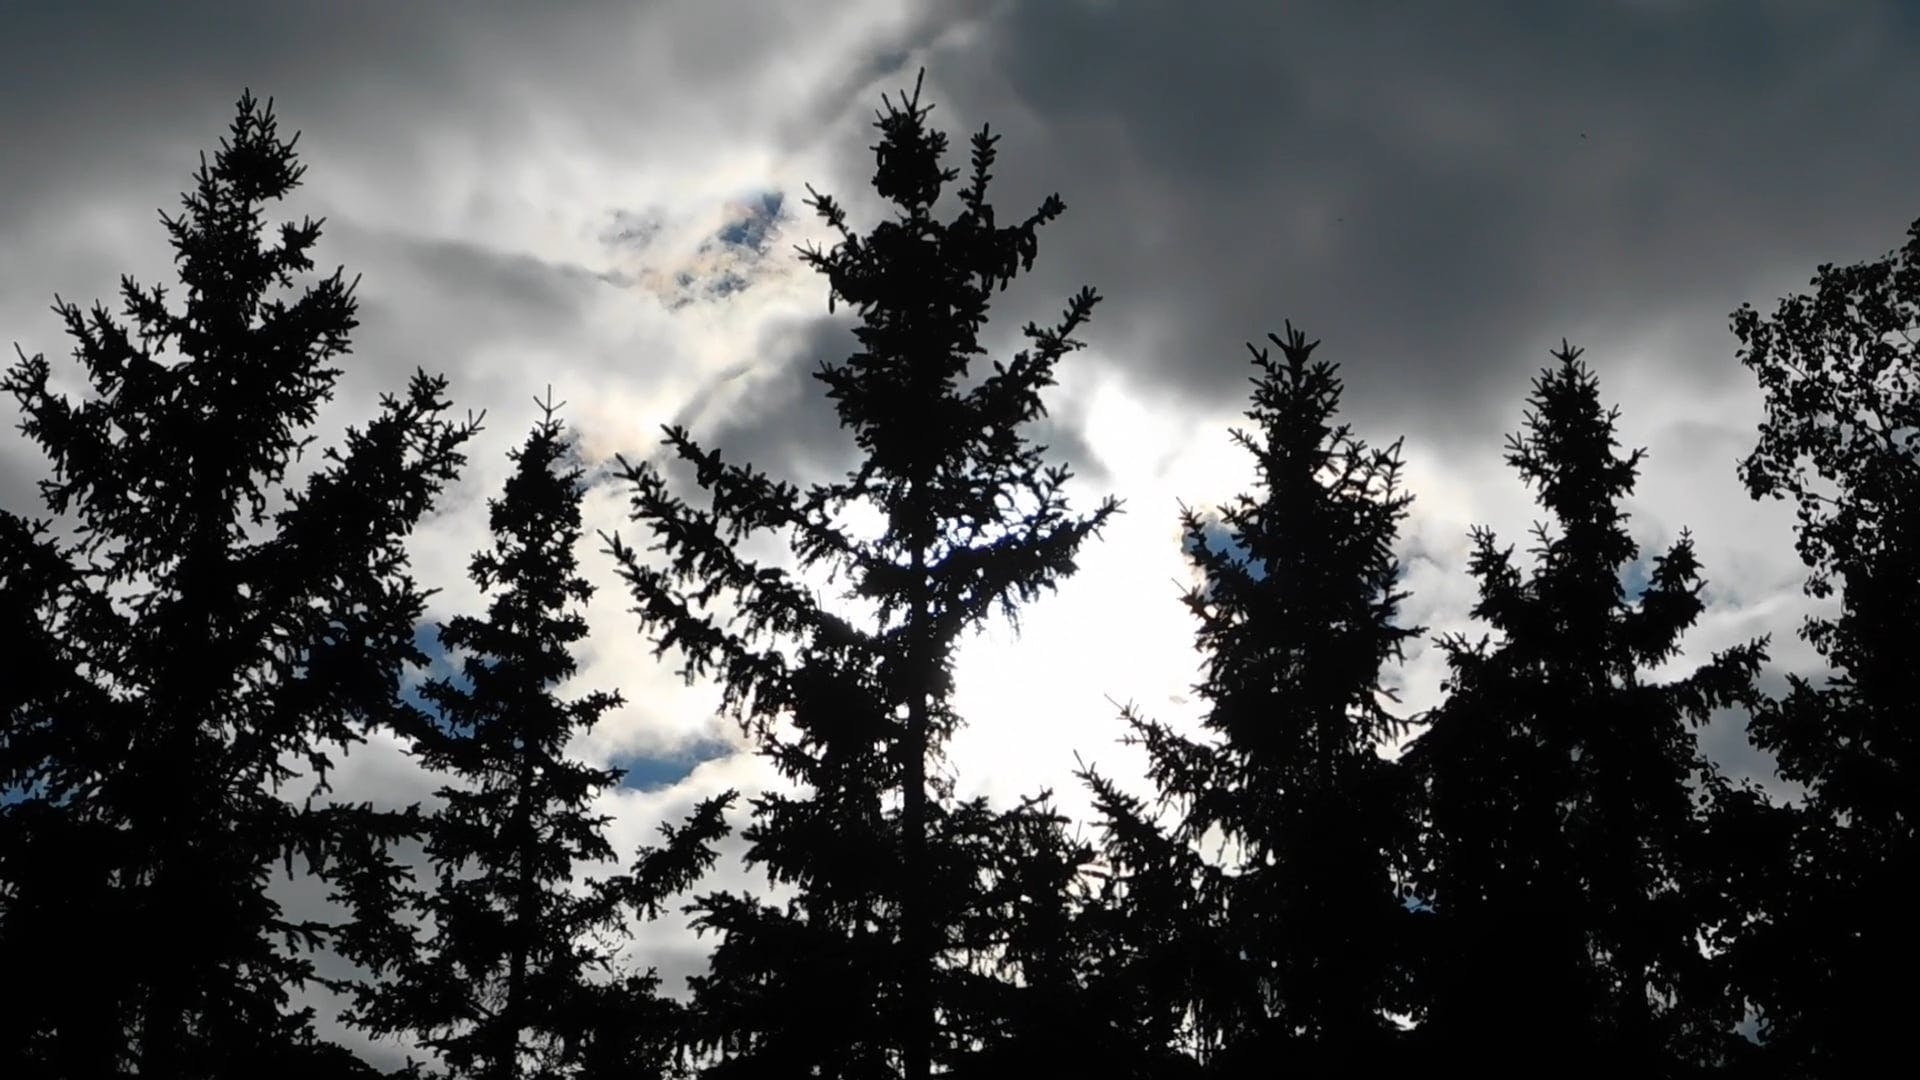 Trees And Clouds At Dusk